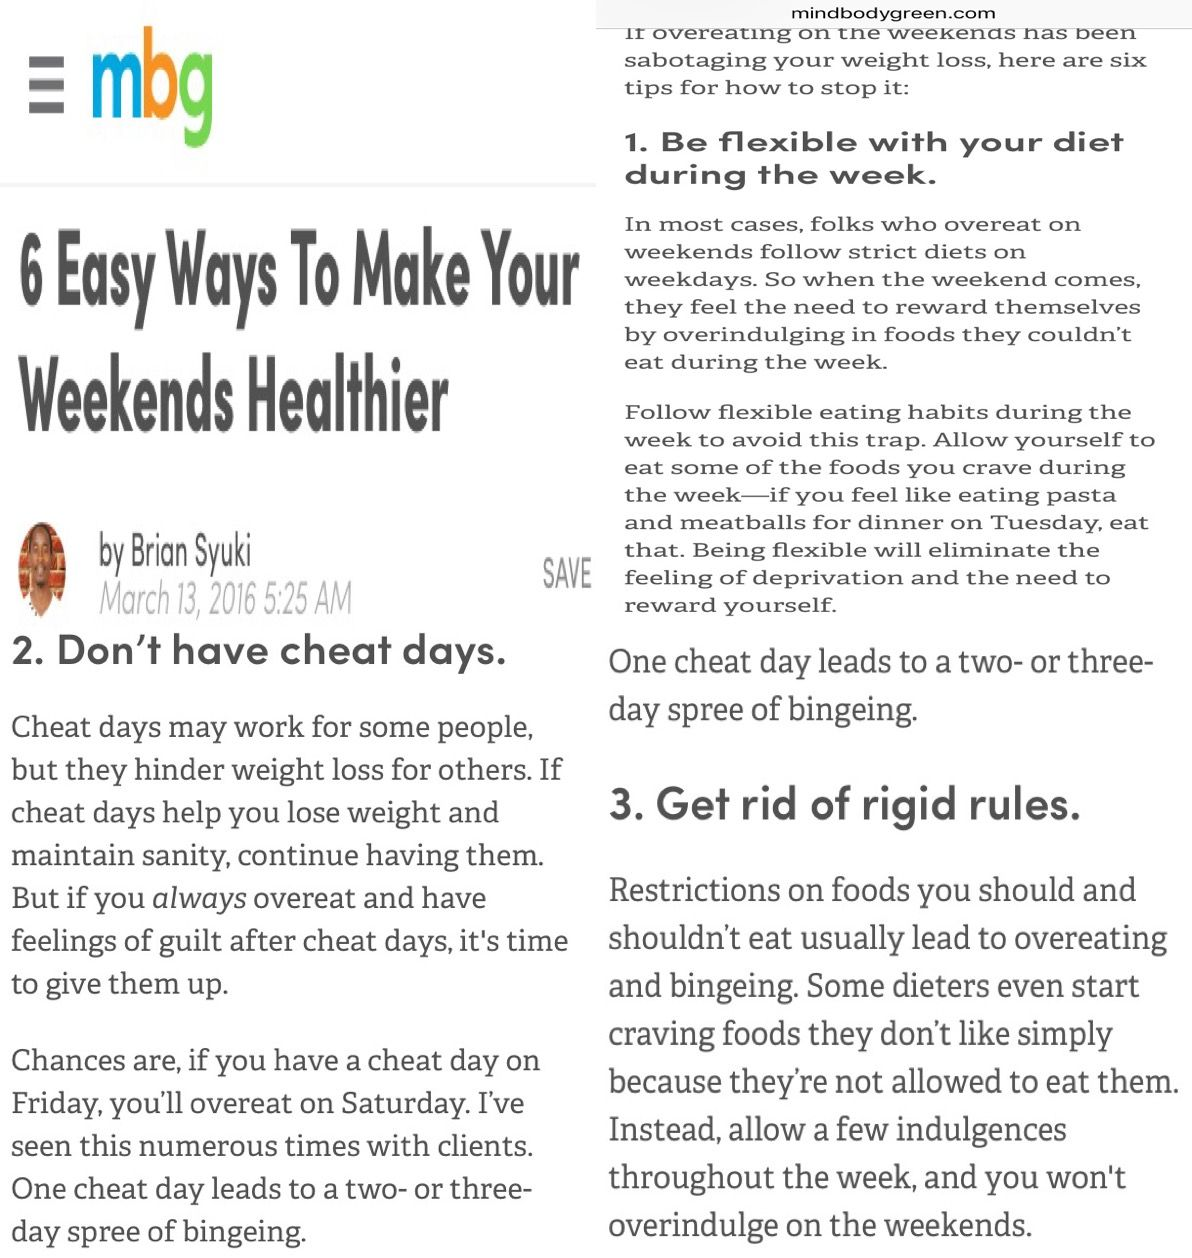 Pin by Melissa White on Clean eating | Fad diets, Health